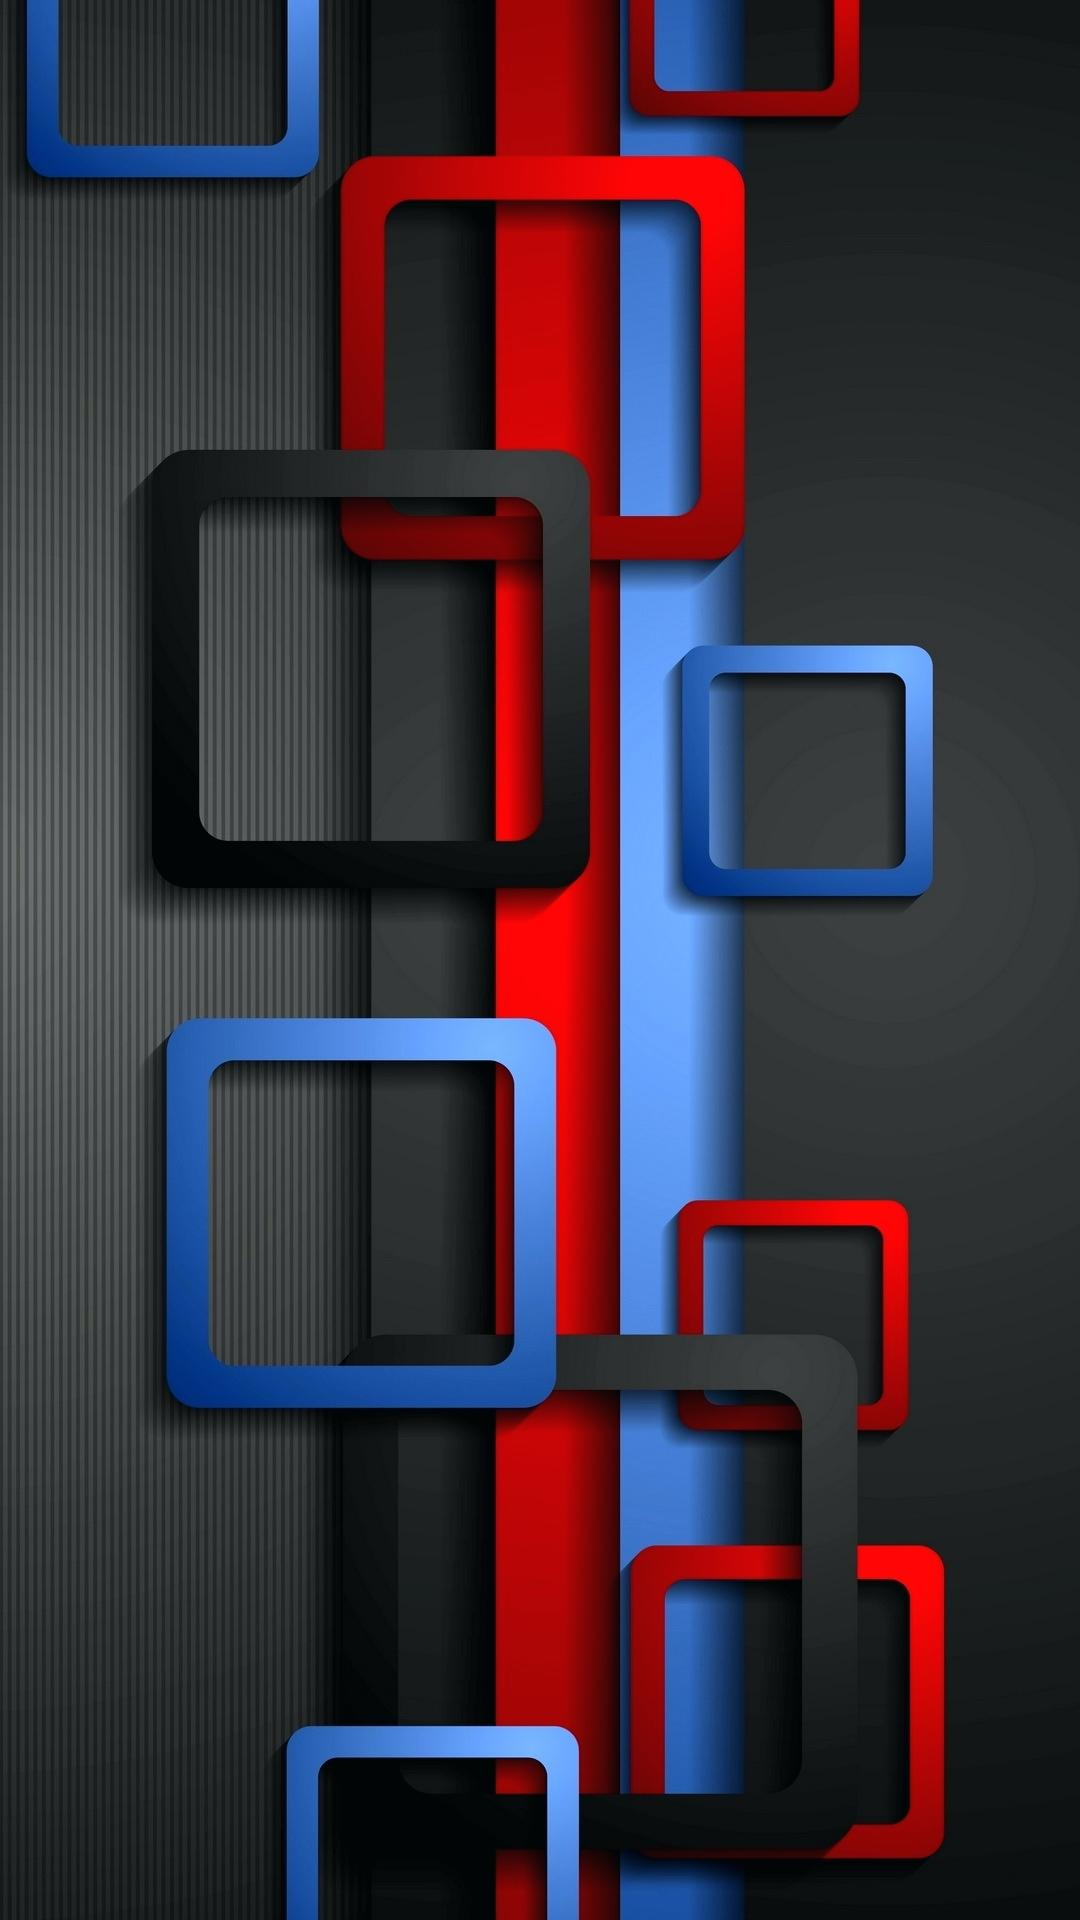 wallpaper full hd for mobile with red blue and black box | hd